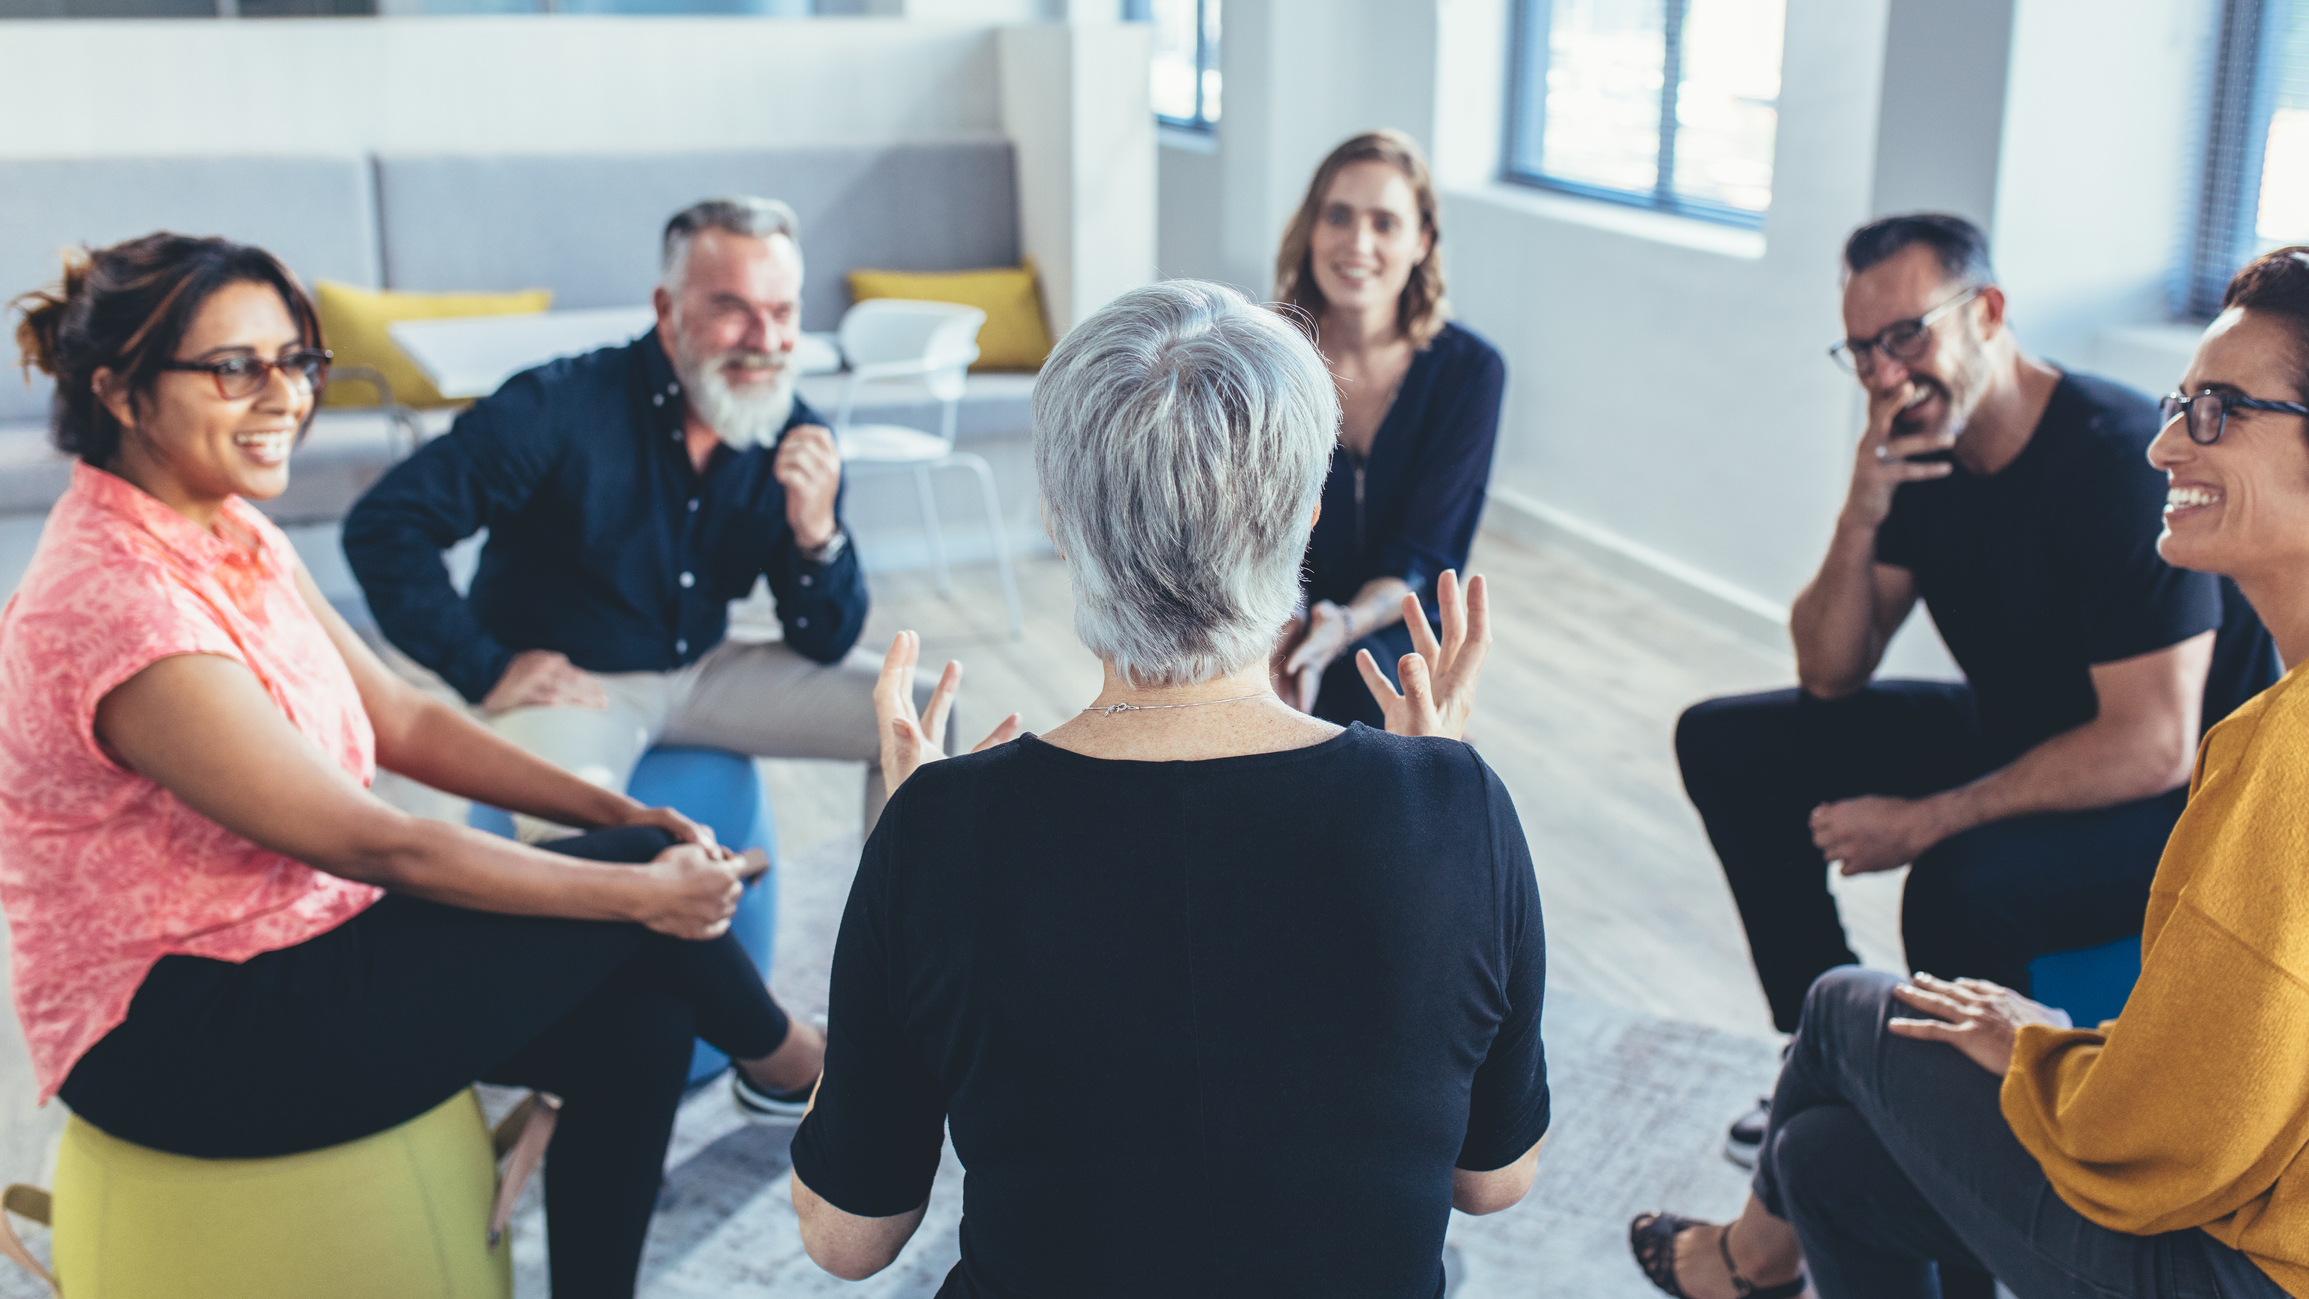 Group of business people sitting in circle and discussing in the office. Mature woman talking with coworkers in a team building session.